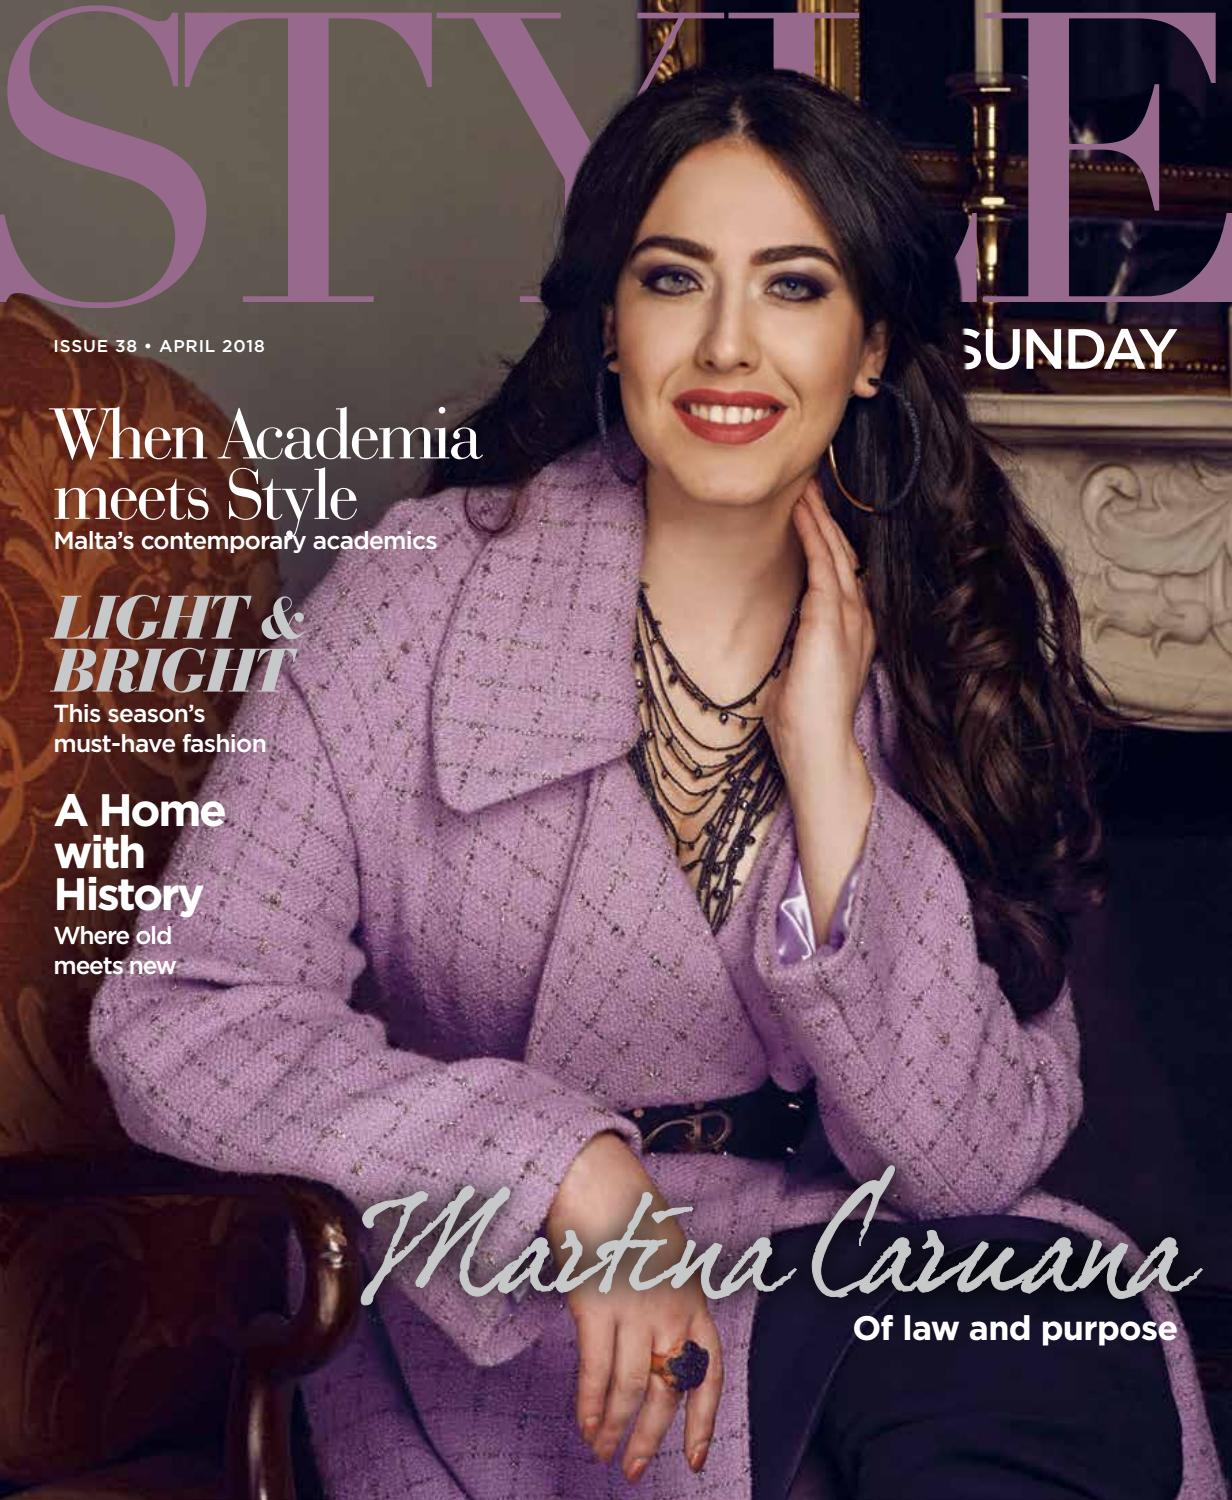 bd3471adf3 Style on Sunday - Issue 38 - Spring 2018 by Content House Group - issuu